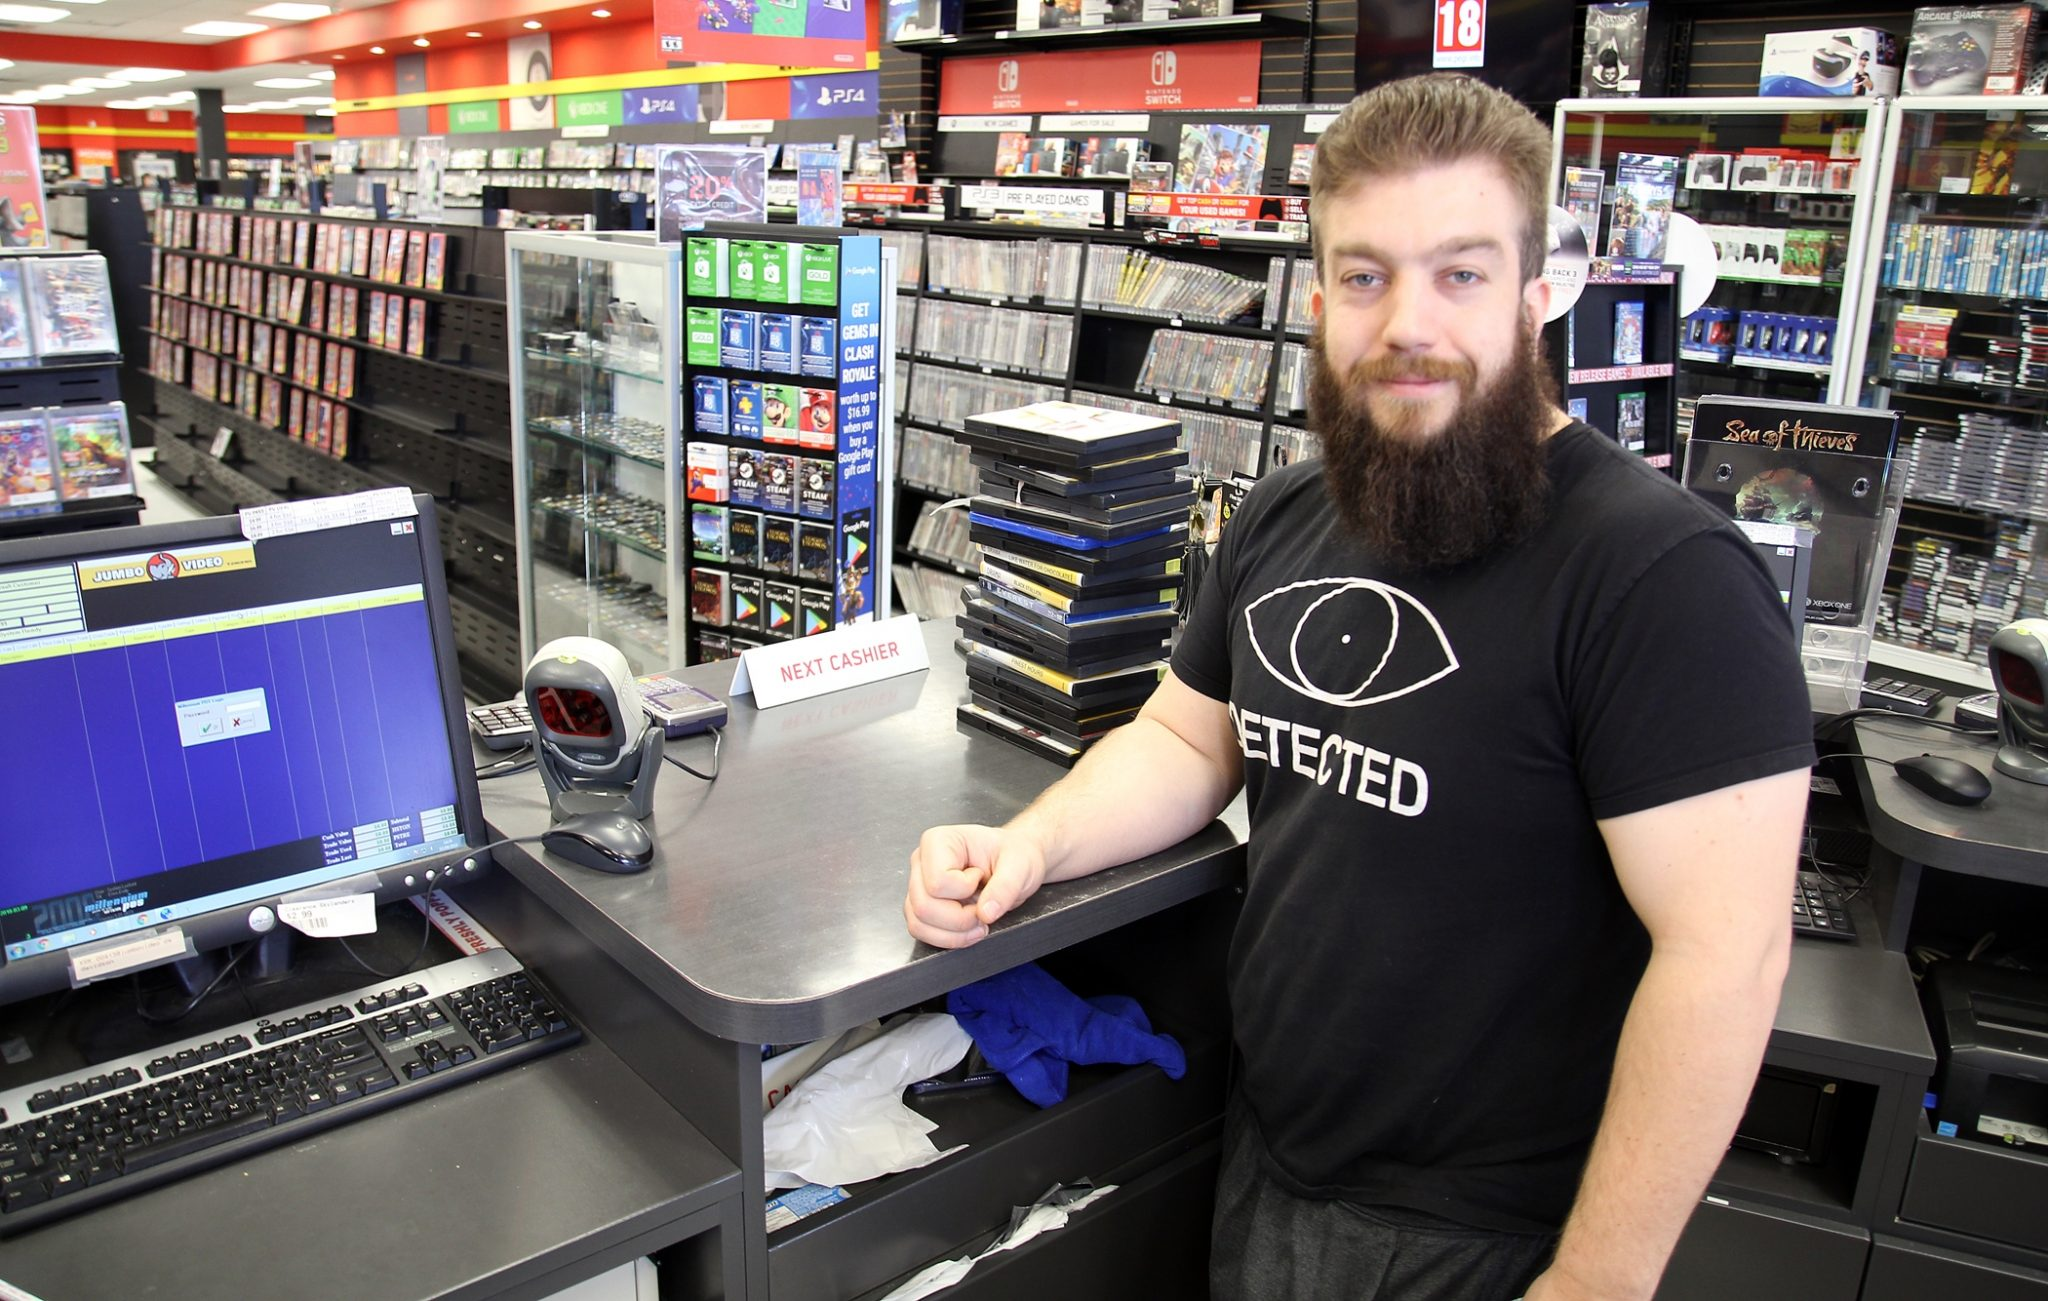 Jumbo Video marketing manager Jake Davidson knows adaptability is key in the video store business.